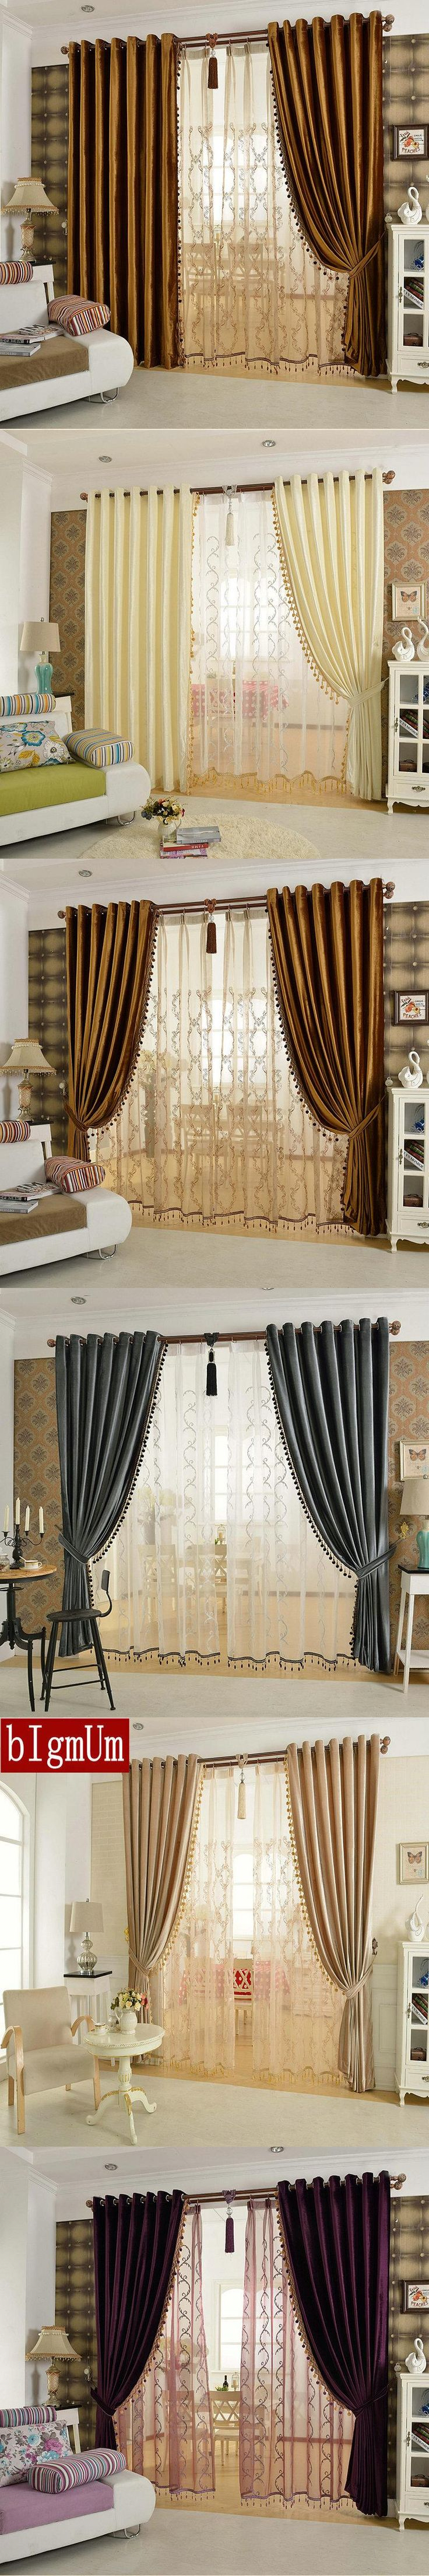 Luxury Curtains Solid Flannel Curtains Ready Made With Braids Colorful  Beige/ Brown /Golden /